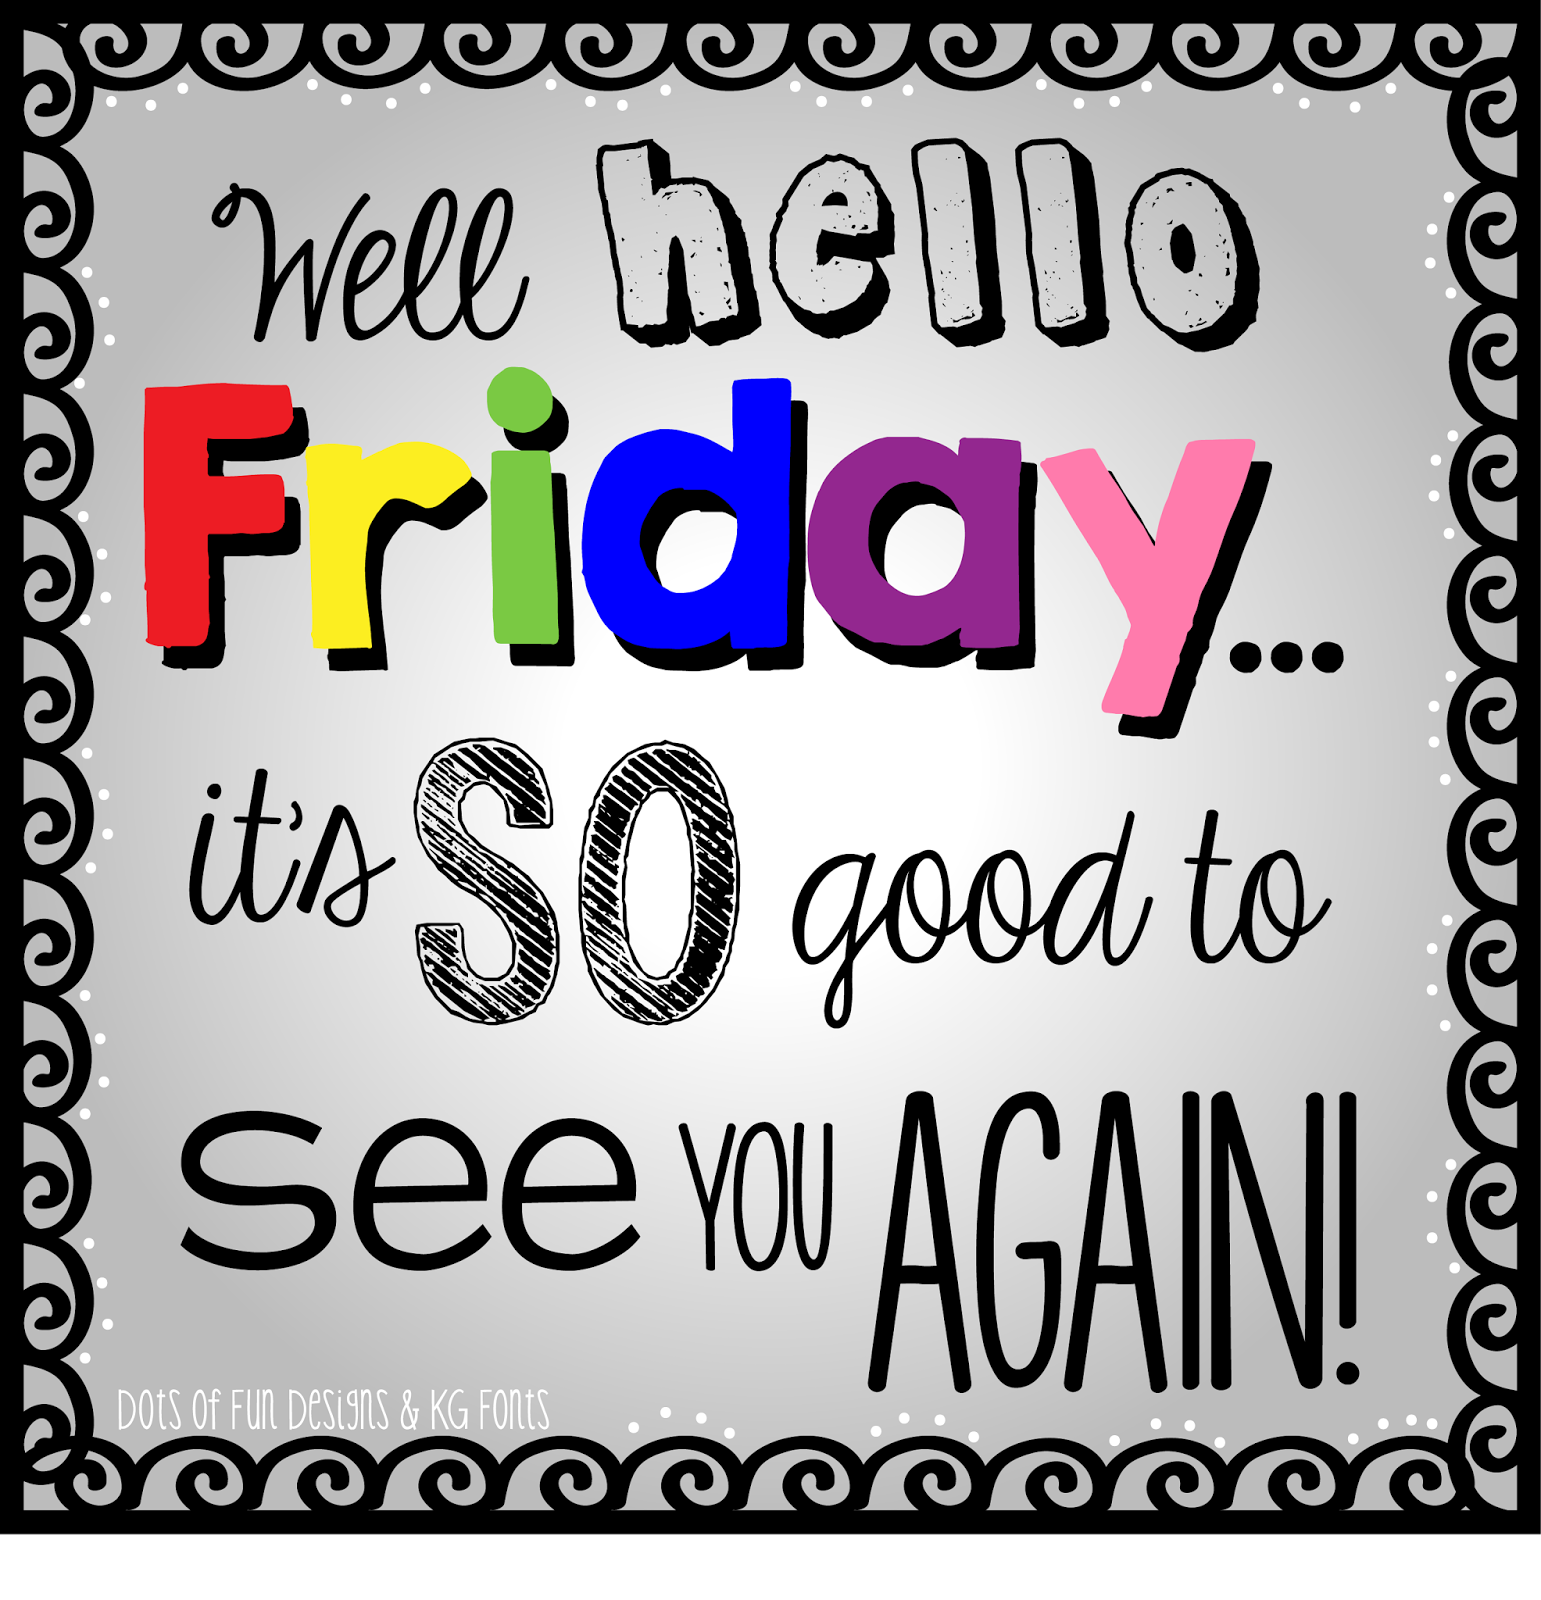 Hello wednesday pictures photos and images for facebook tumblr -  Photos And Images For Facebook Tumblr Pinterest And